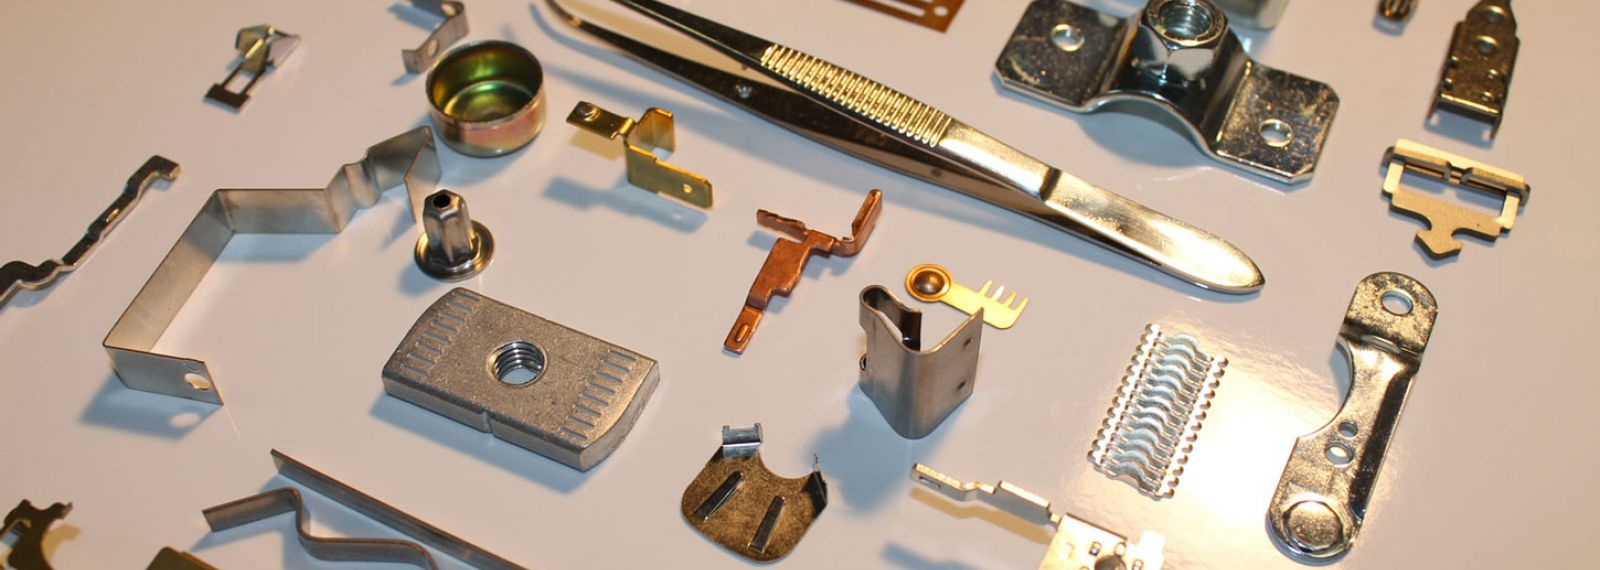 Small components manufactured